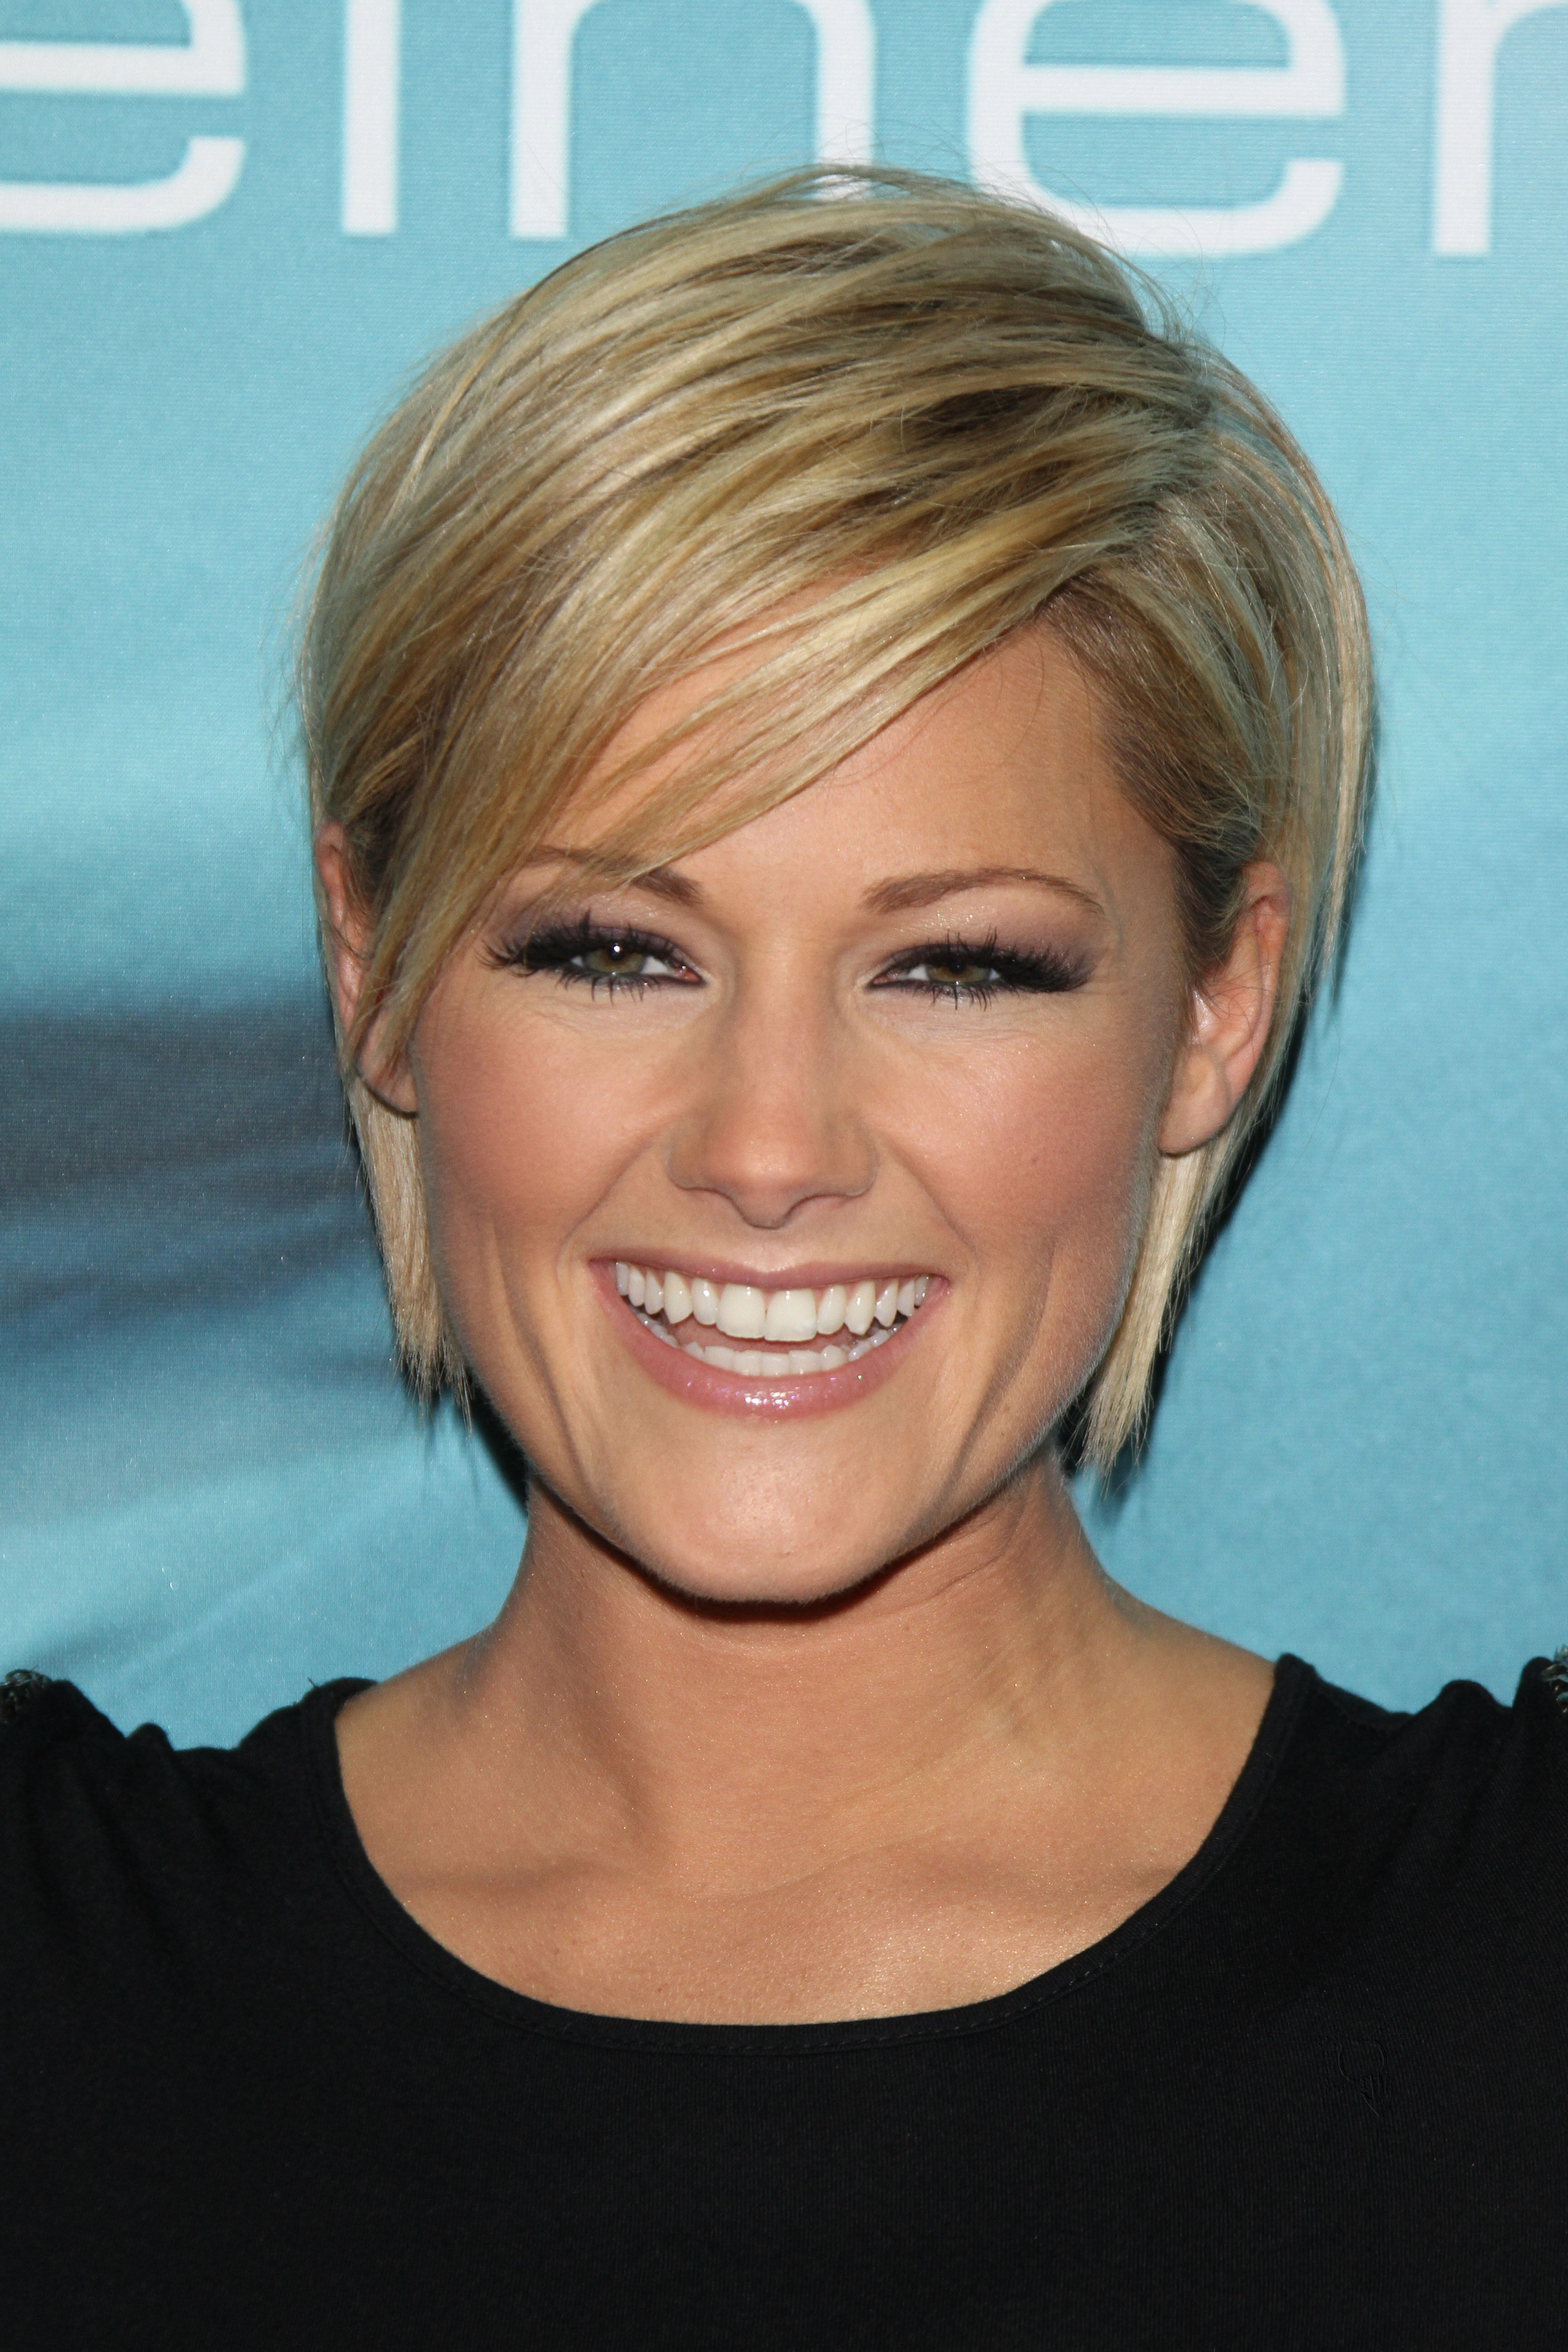 awesome bob hairstyles stage medium length photo-Stylish Bob Hairstyles Tiered mid-length decor